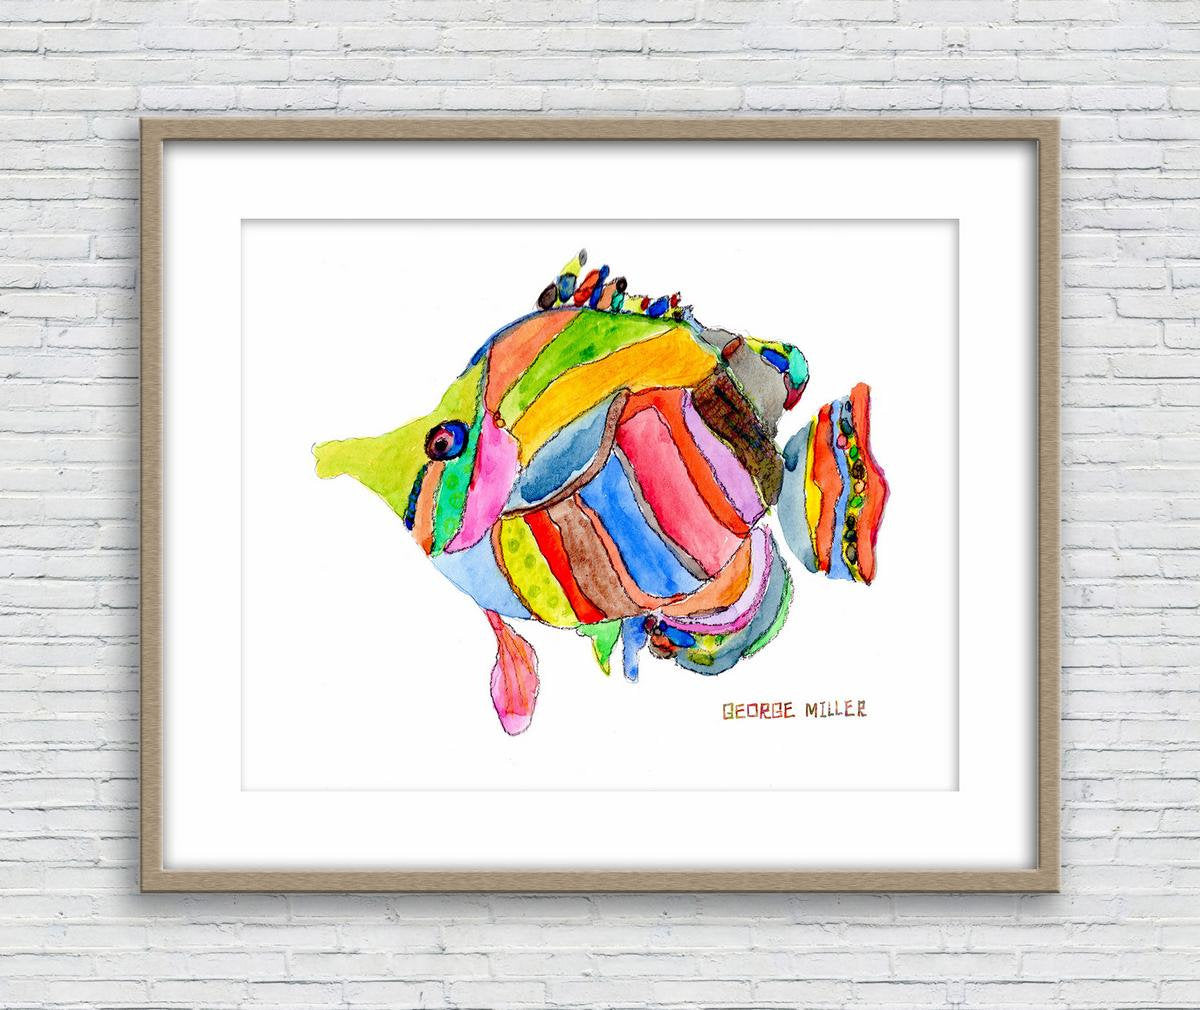 Tropical Fish Watercolor Art, Wall Art Prints, Abstract Print, Art Print Watercolor, Artwork, Modern Wall Decor, Original Art Watercolor